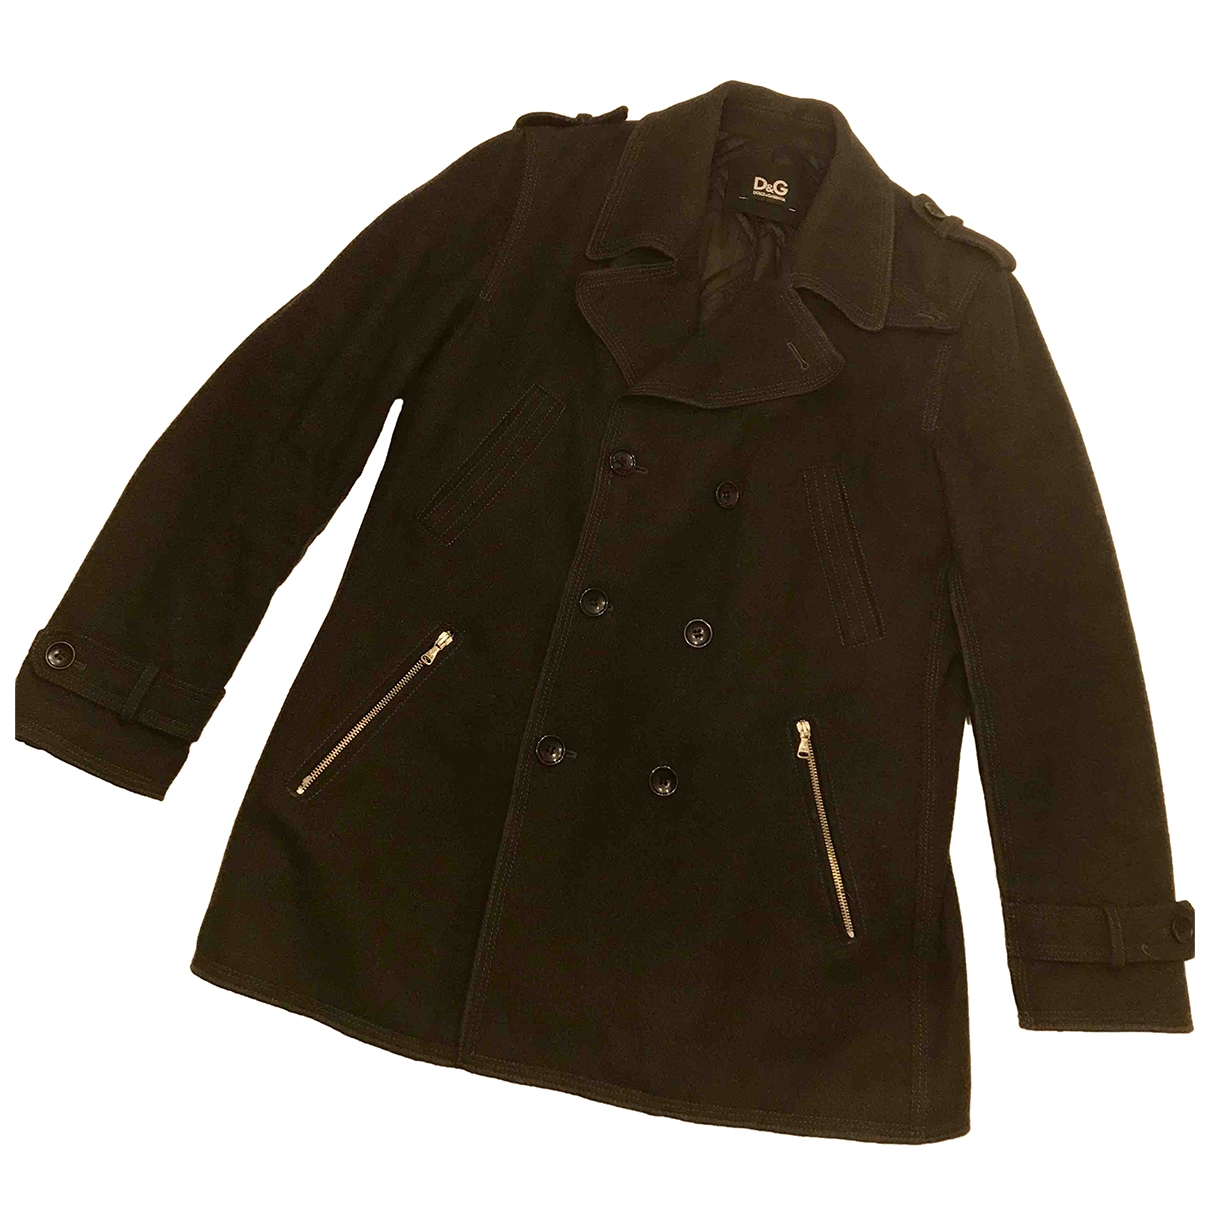 D&g \N Anthracite Wool jacket  for Men 50 IT